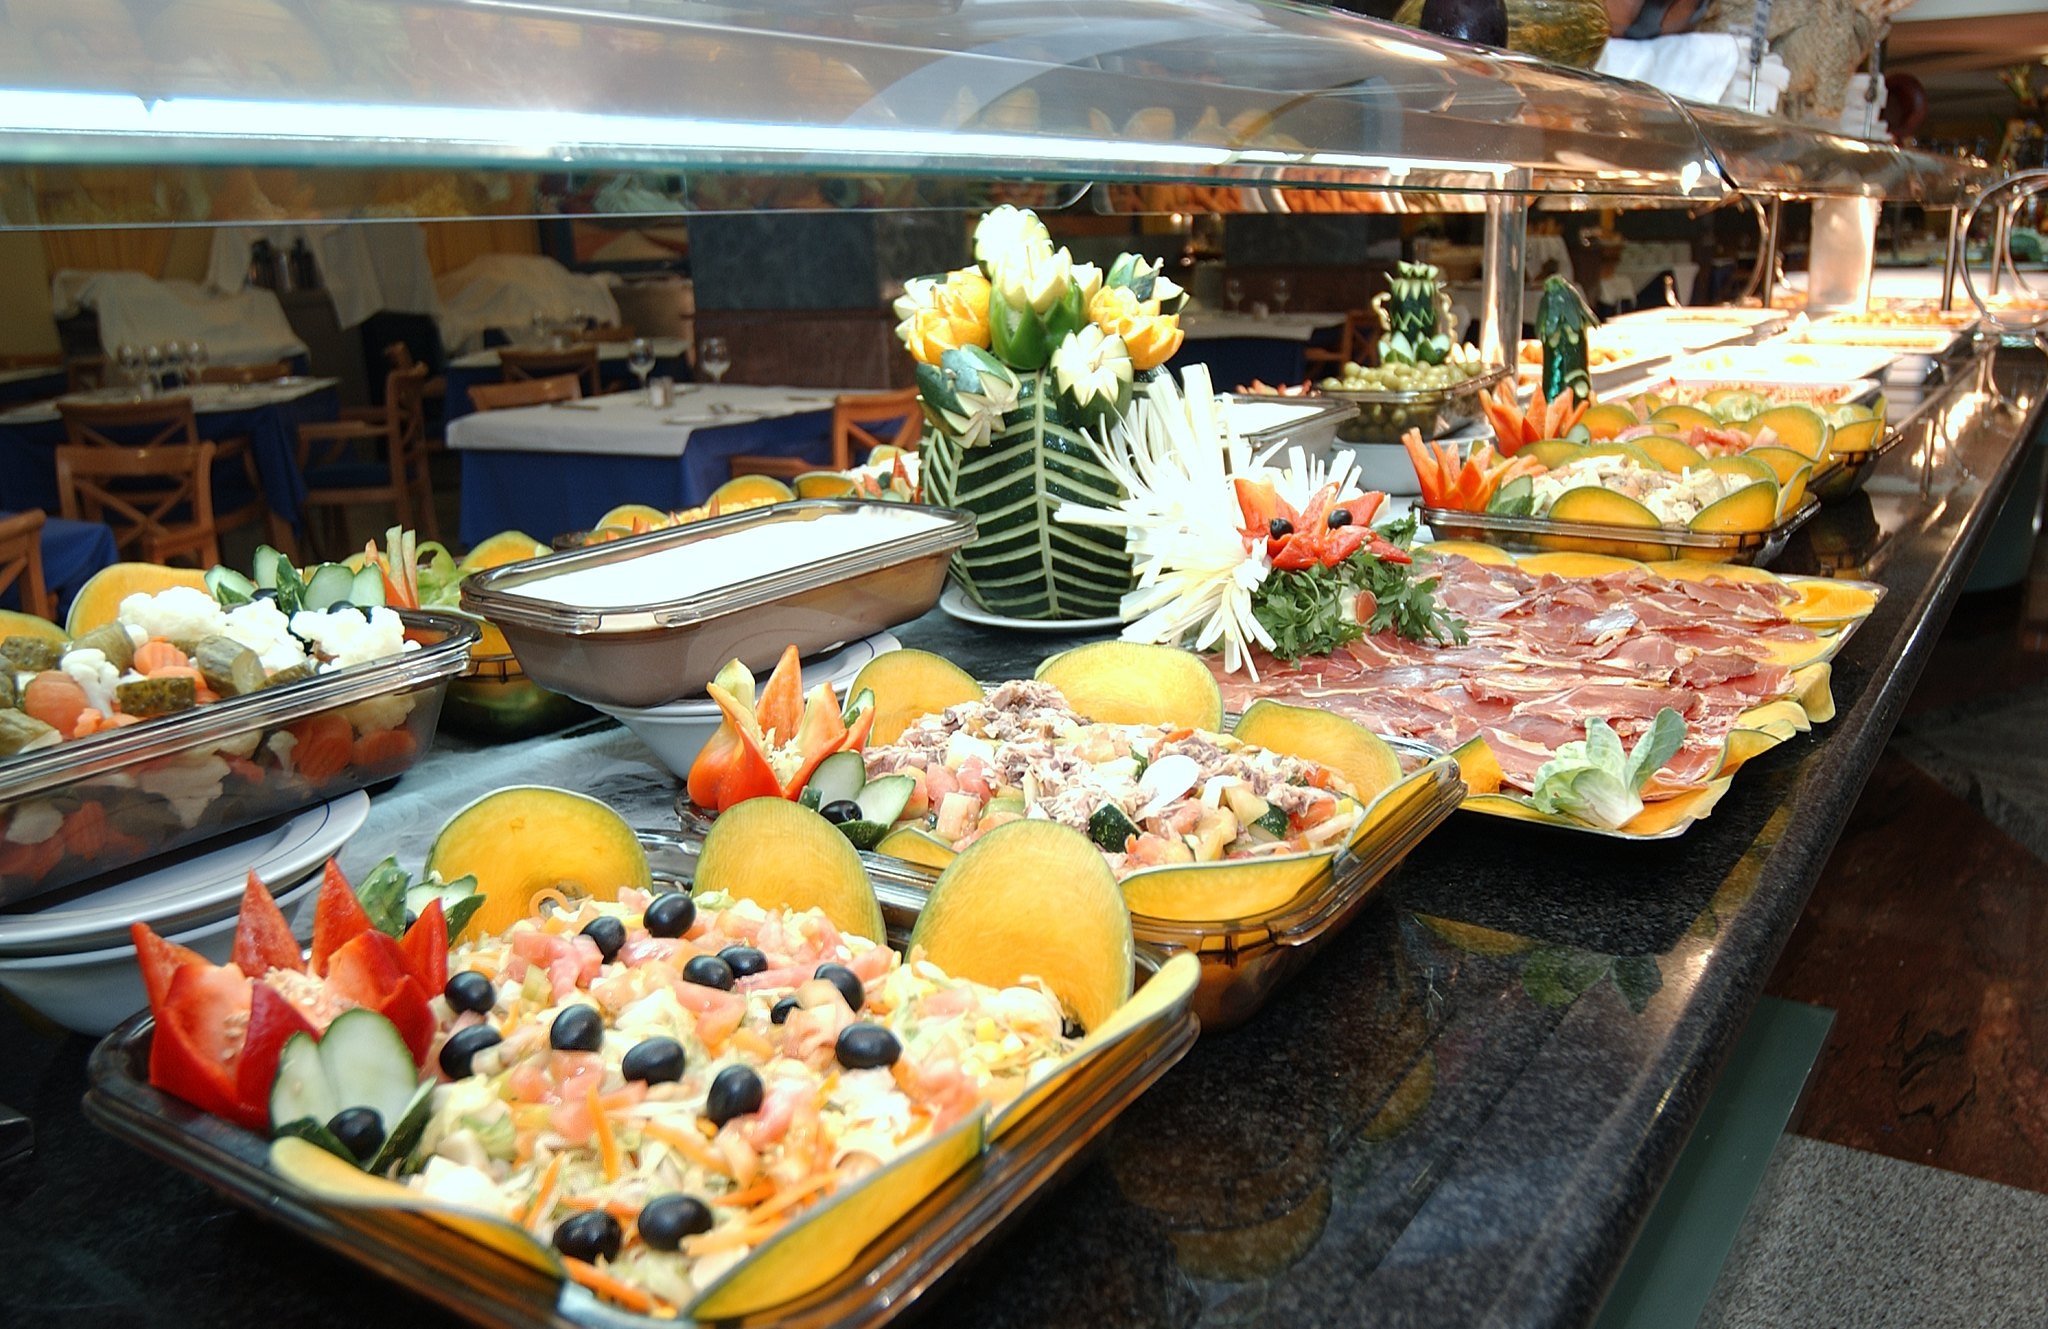 10 Ways All-You-Can-Eat Buffets Make Their Money